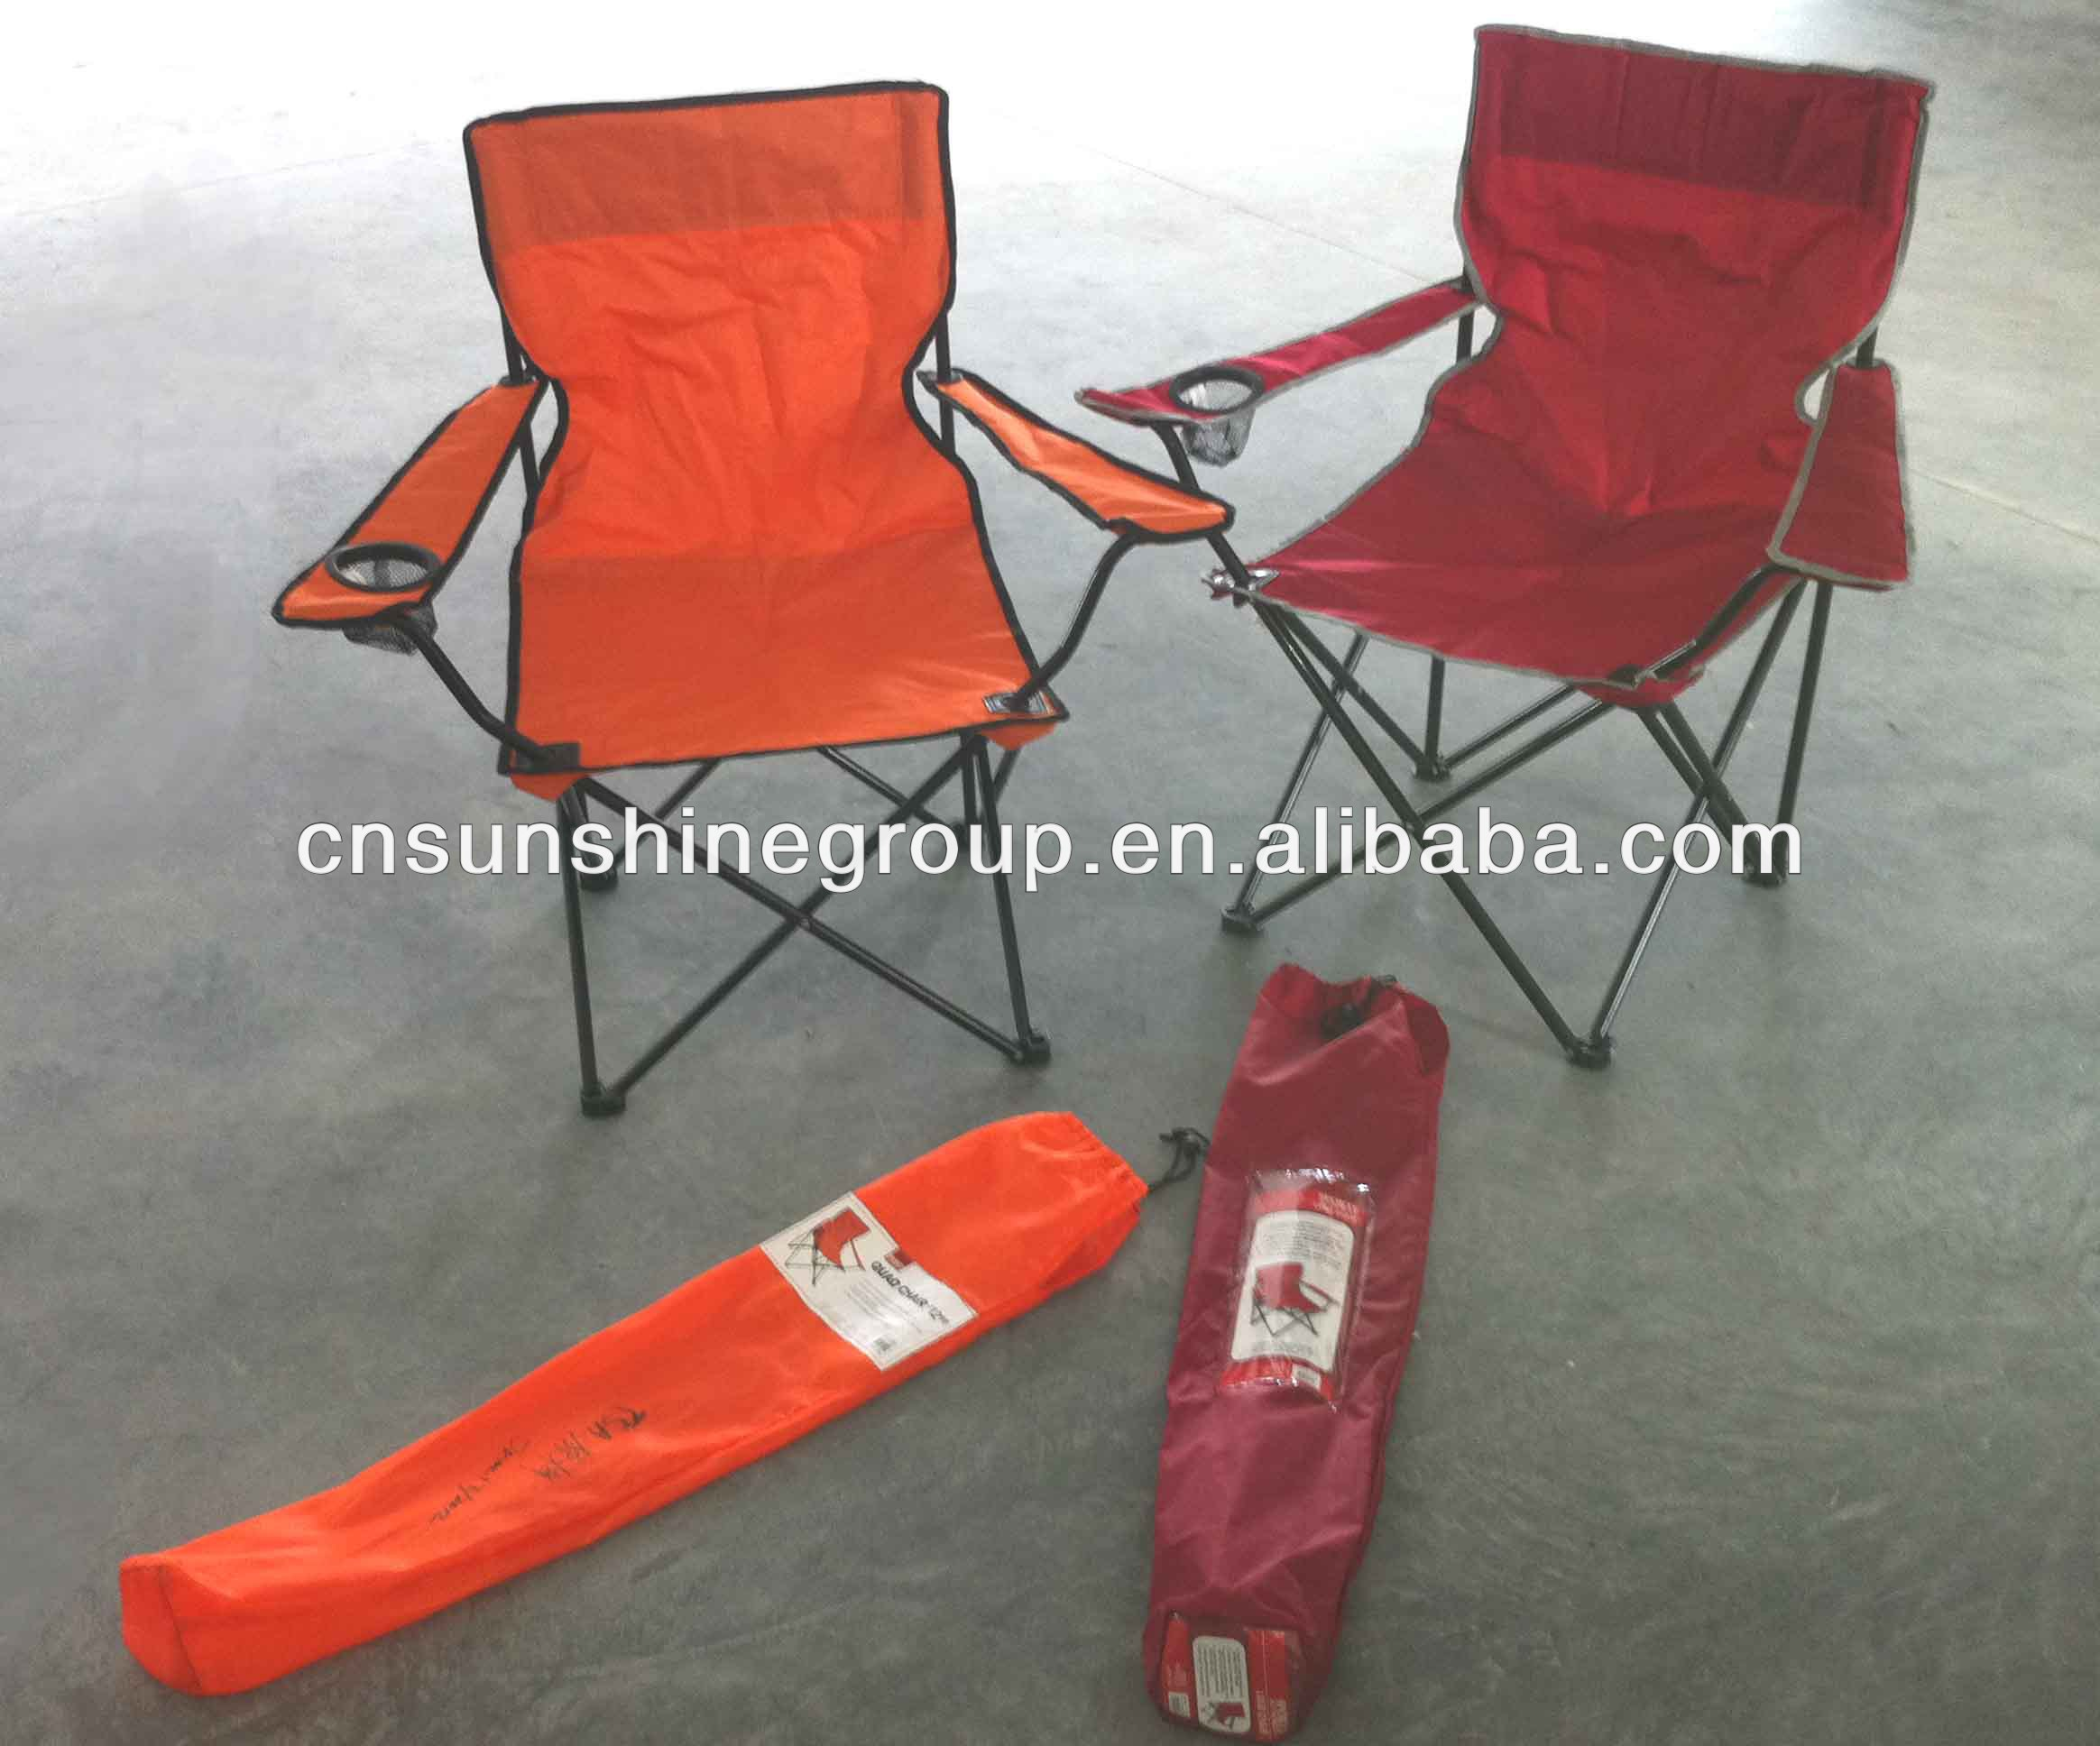 Giant Camp Chair Giant Camp Chair Suppliers and Manufacturers at